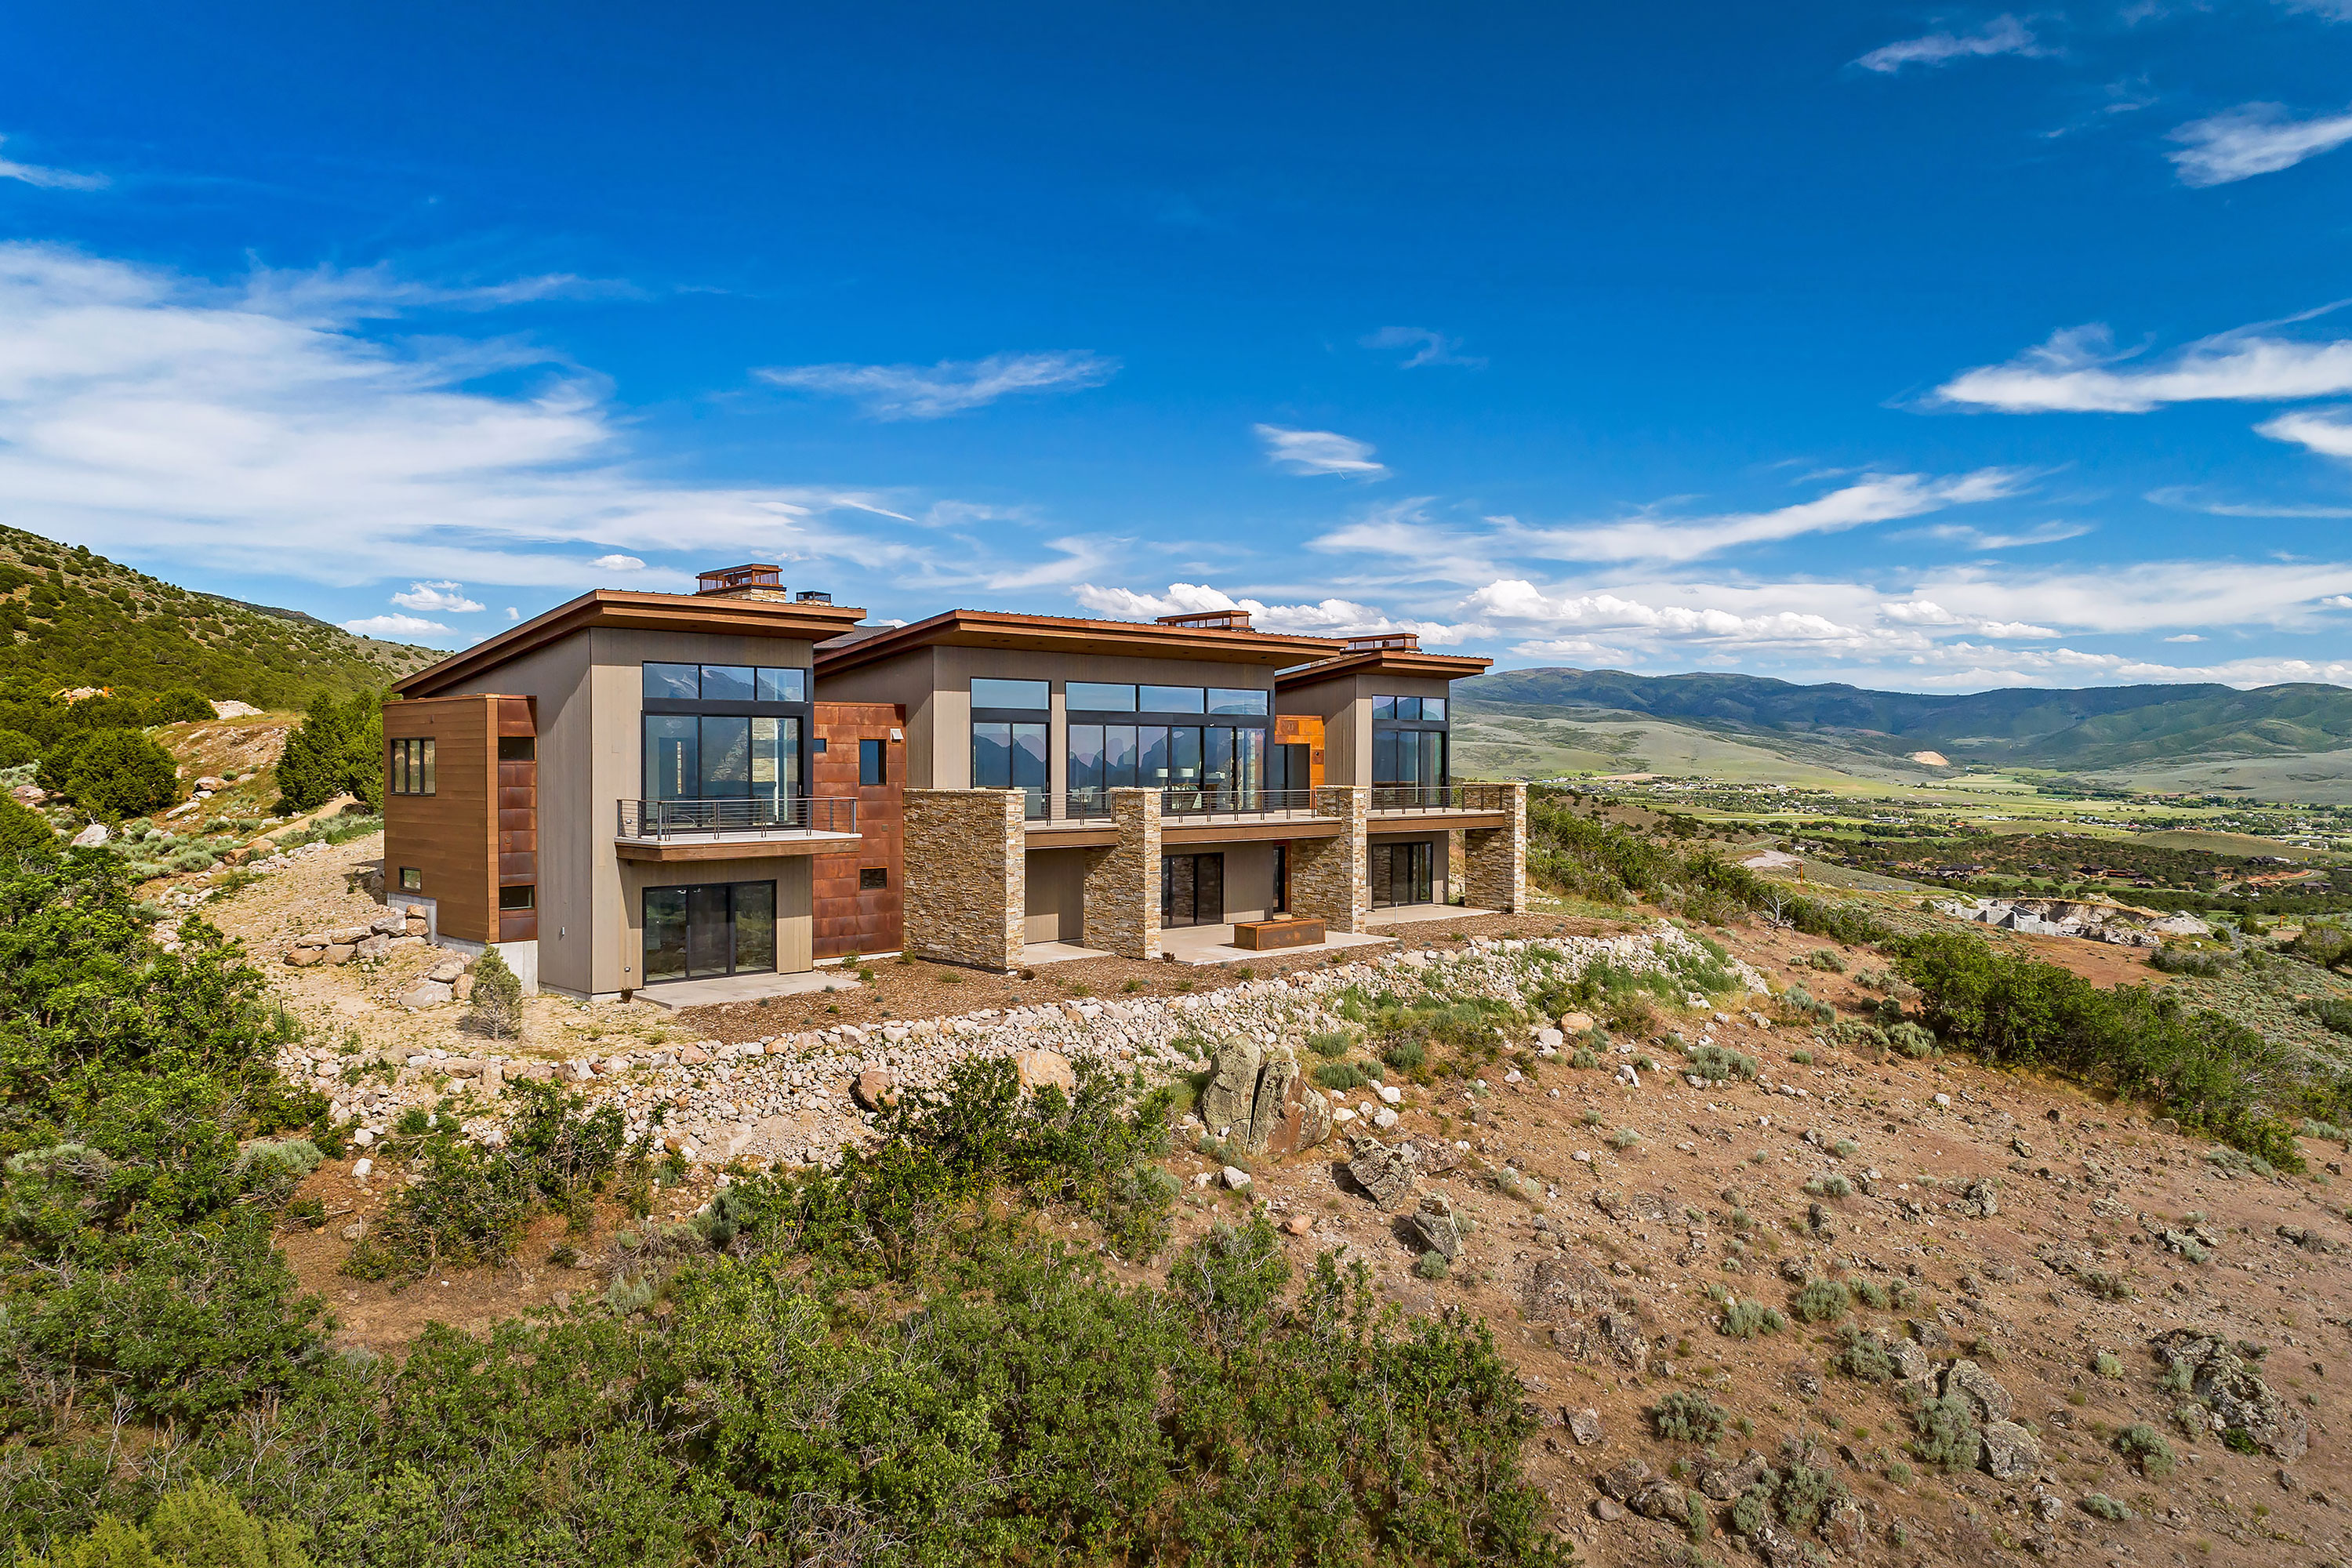 Private Residence - Heber City, Utah. Aerial Photography by Alan Blakely.